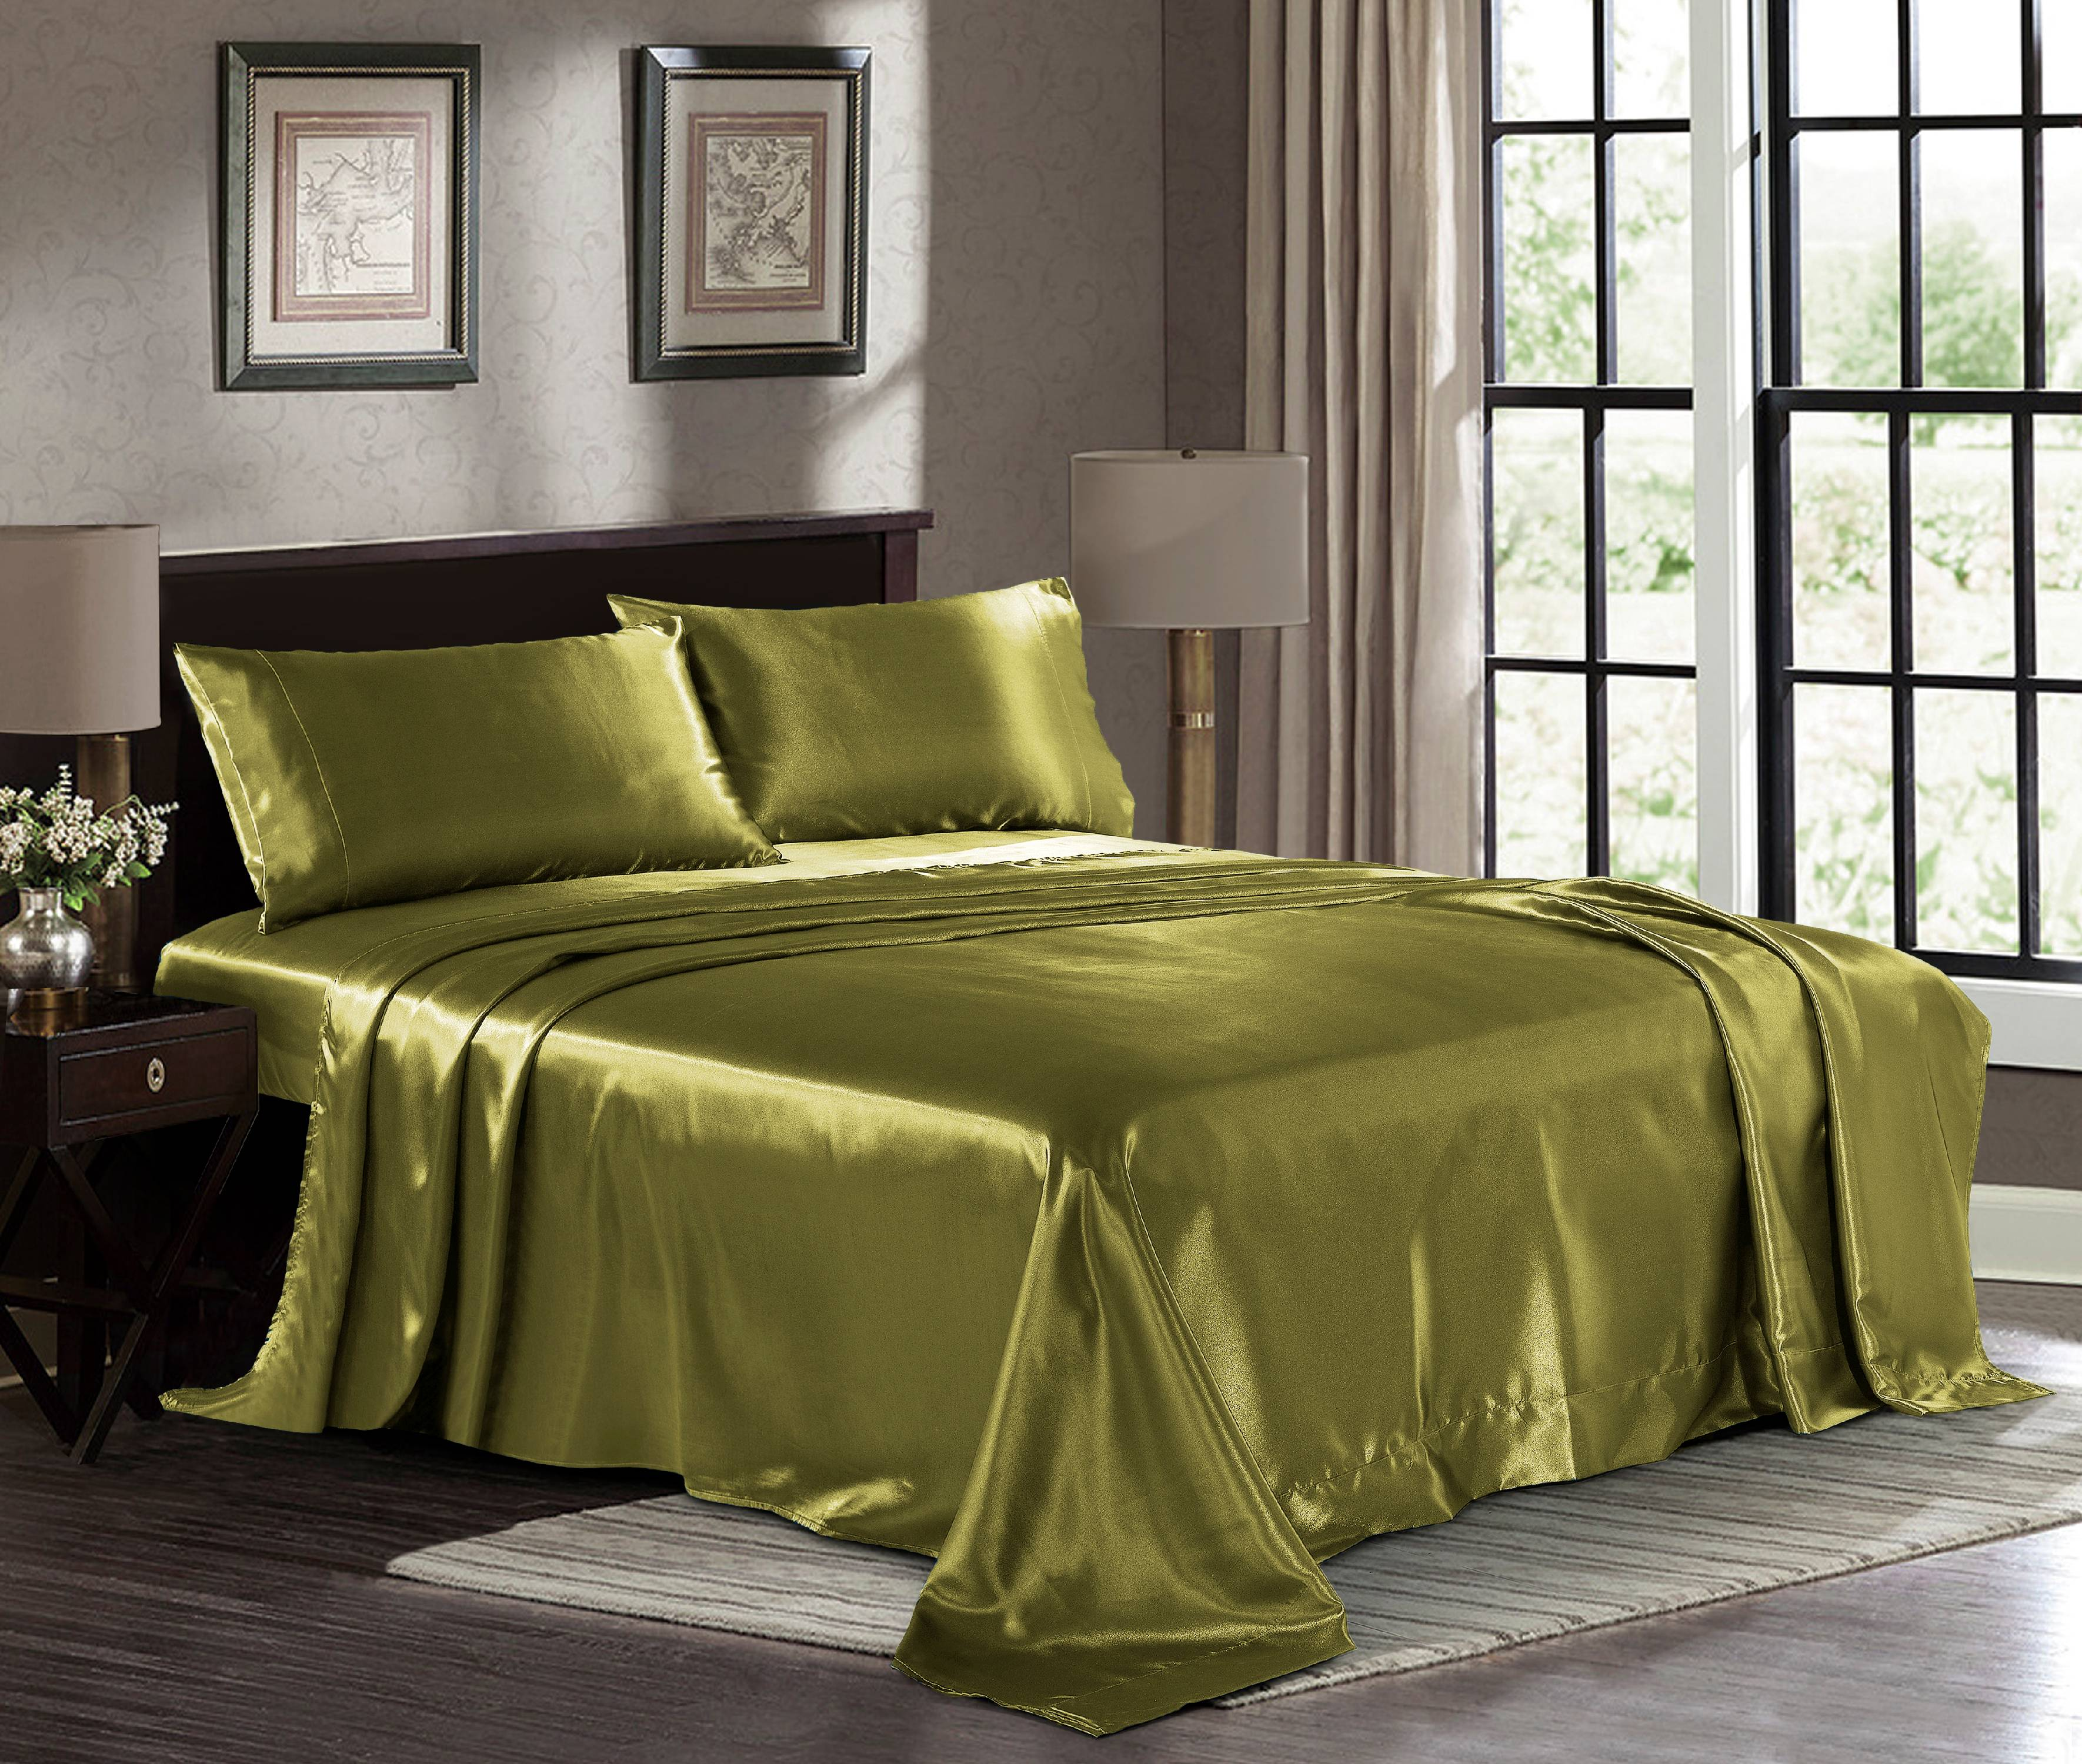 Ultra Soft Silky Satin Bed Sheet Set With Pillowcase